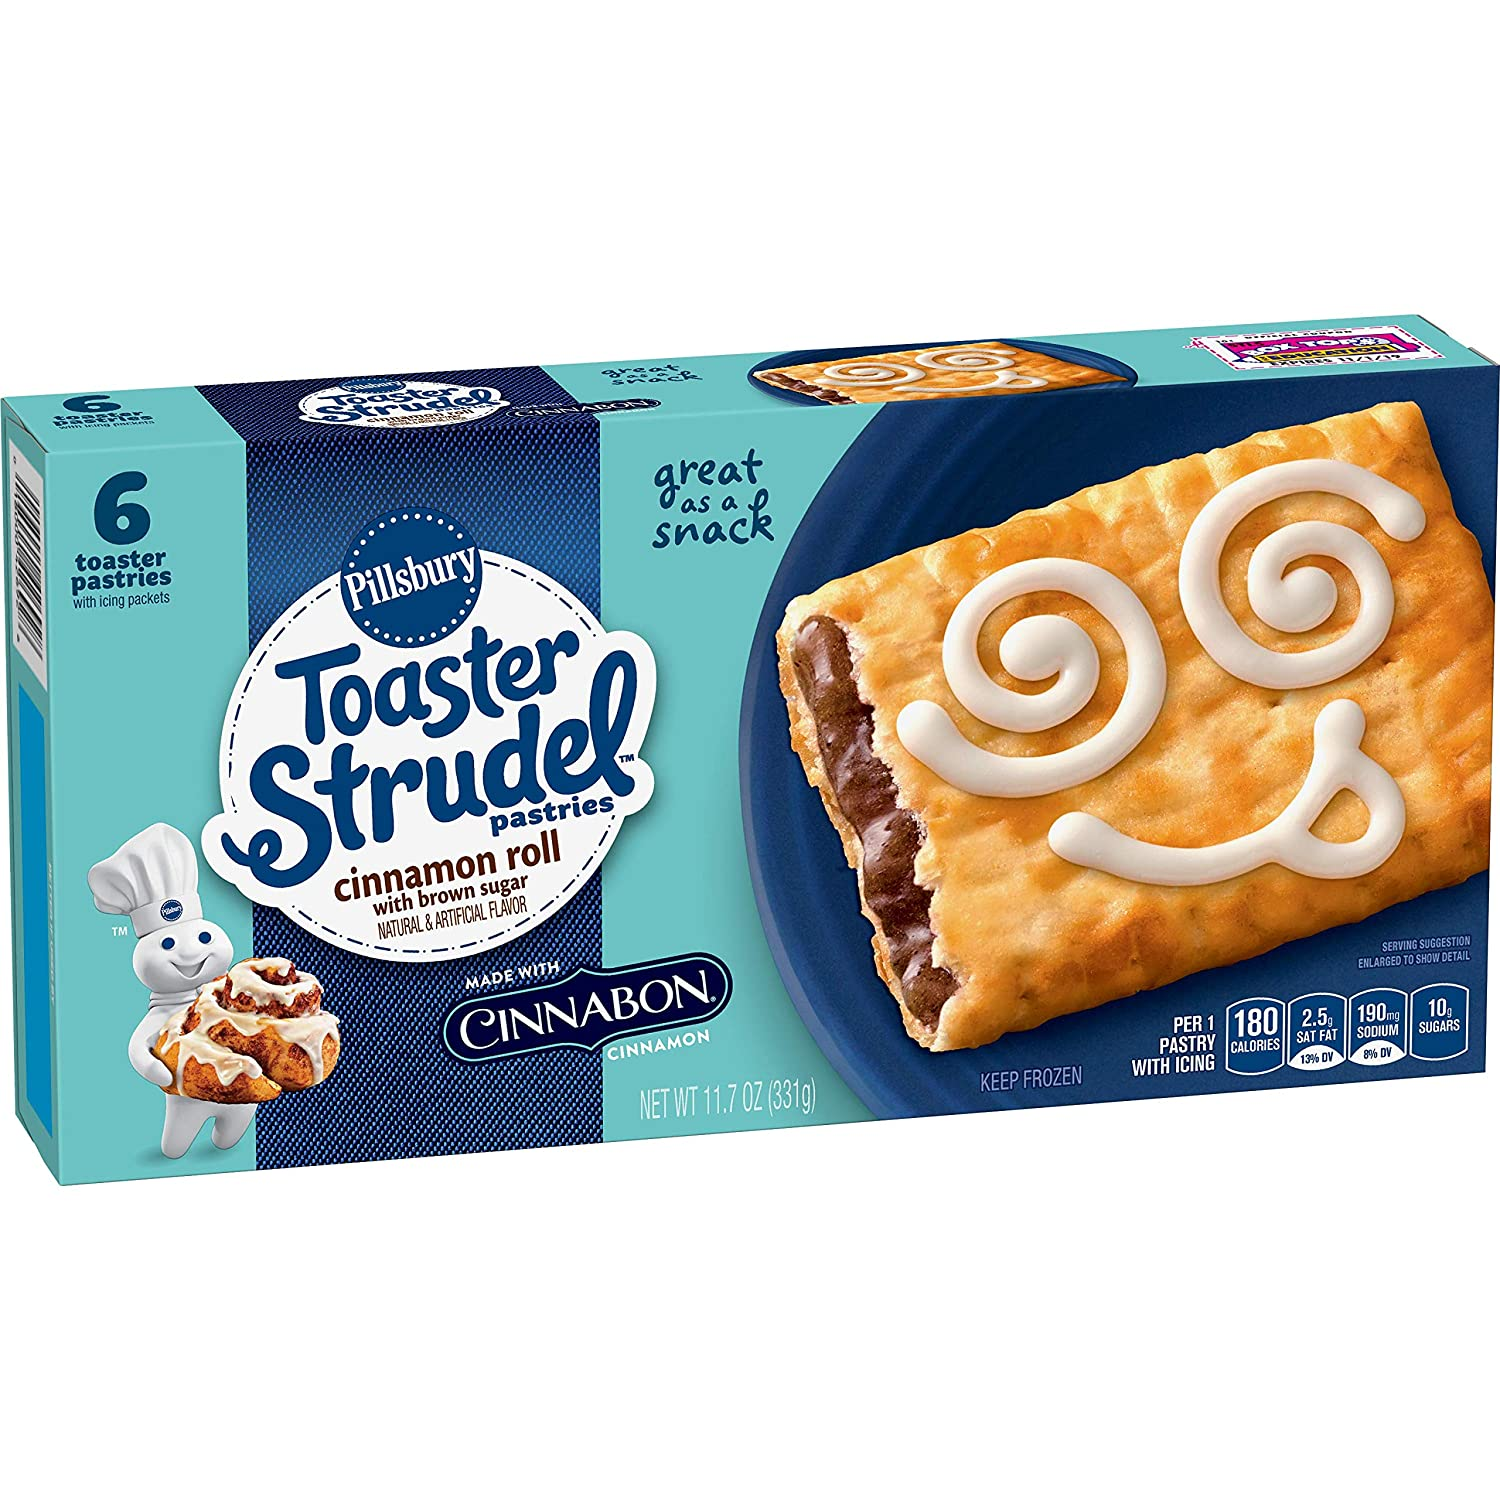 Pillsbury Toaster Strudel, Cinnamon Roll with Cinnabon Cinnamon, 6 Frozen Pastries, 11.5 oz. Box